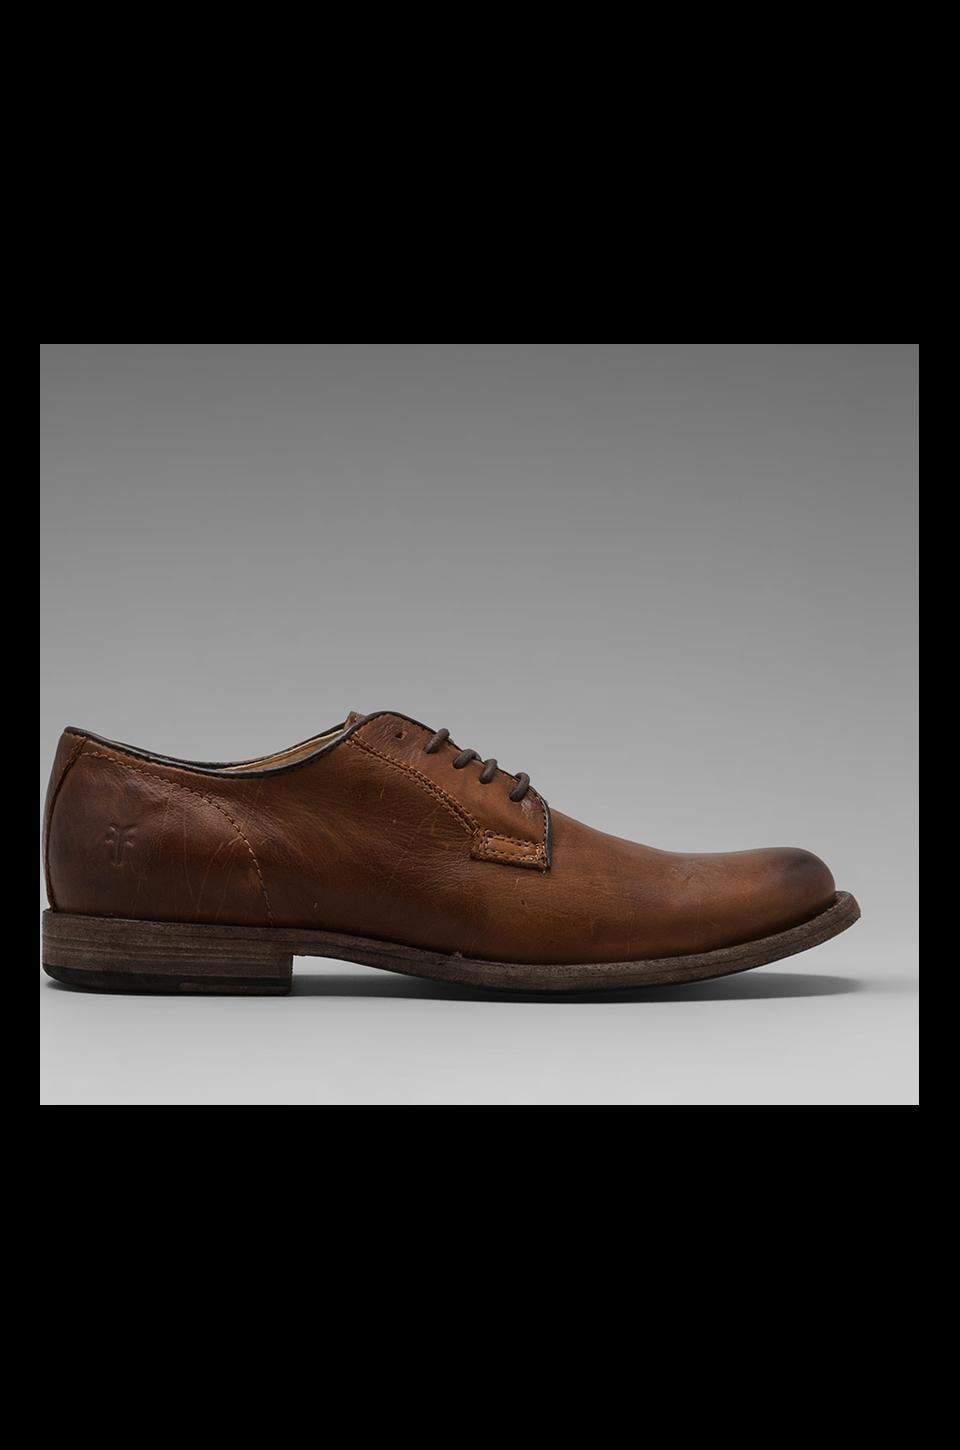 Frye Phillip Oxford in Cognac